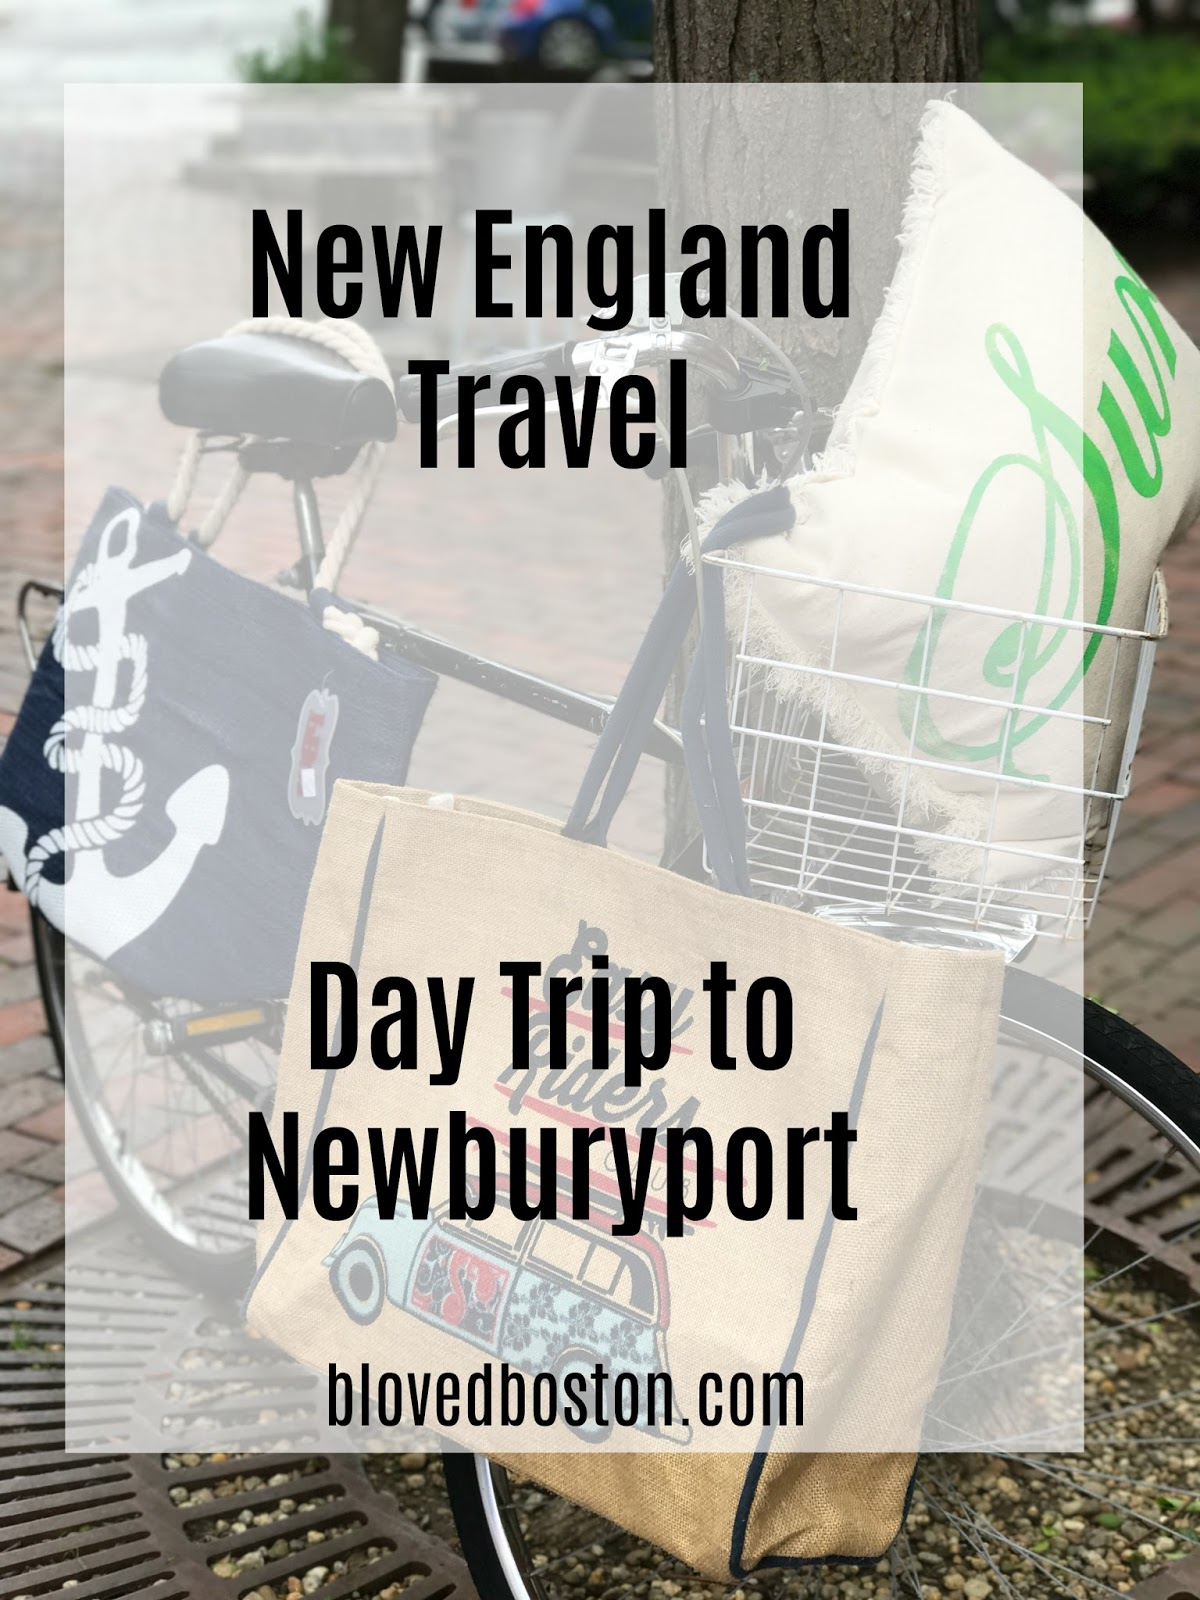 New England Travel, Where to go near boston, things to do around Boston